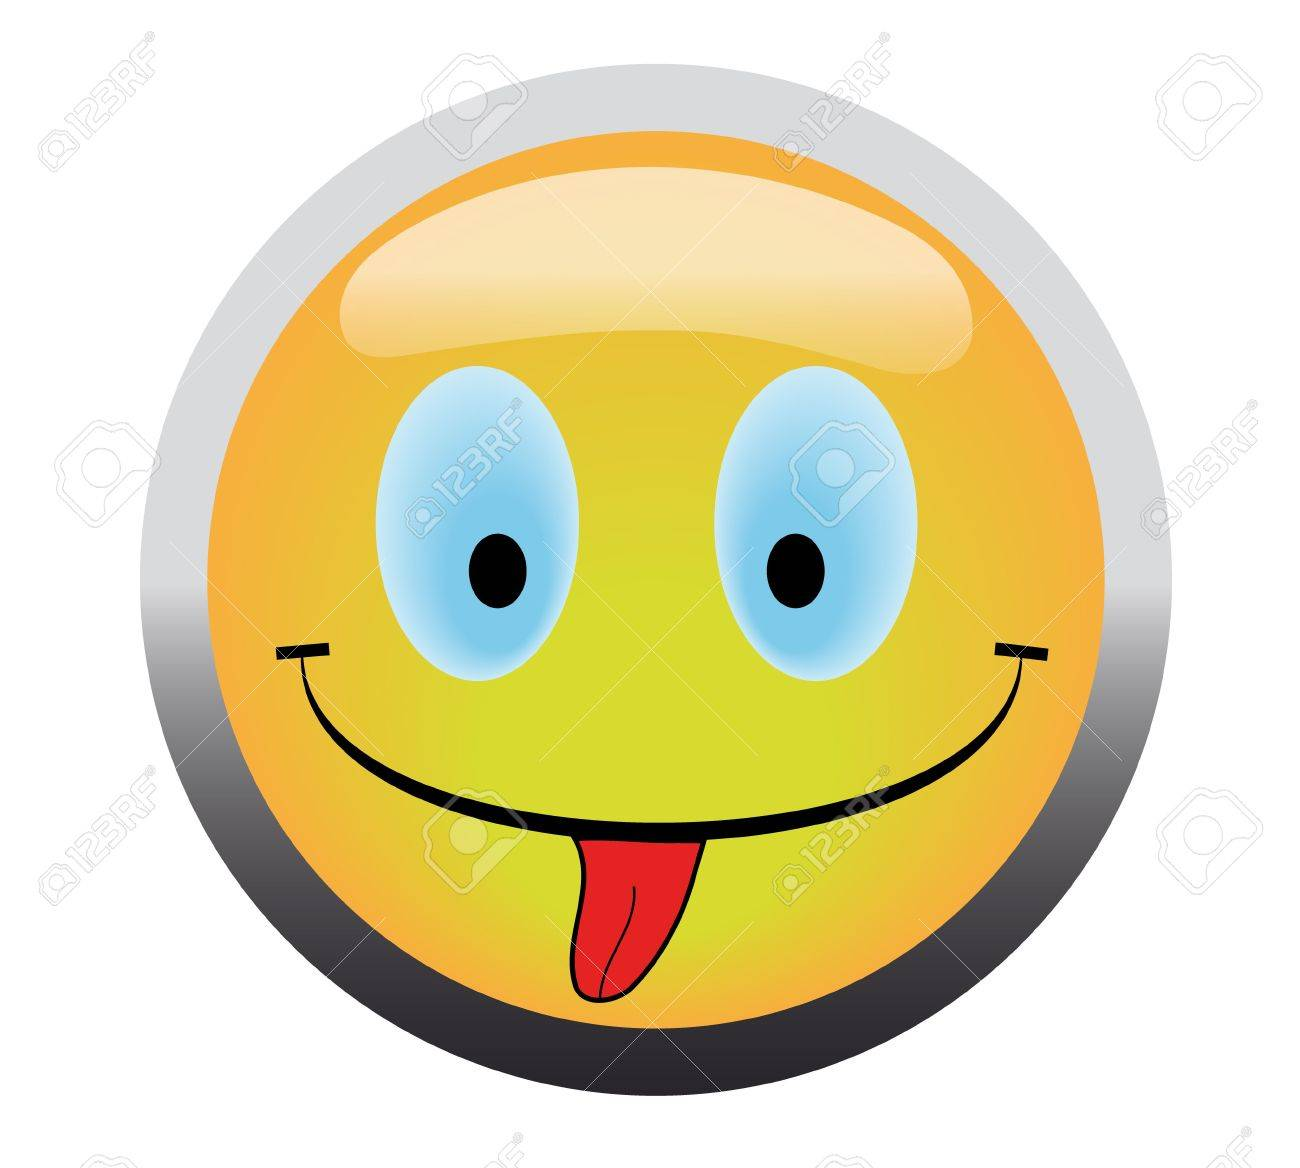 Happy smile button stick out tongue Stock Photo - 4624993